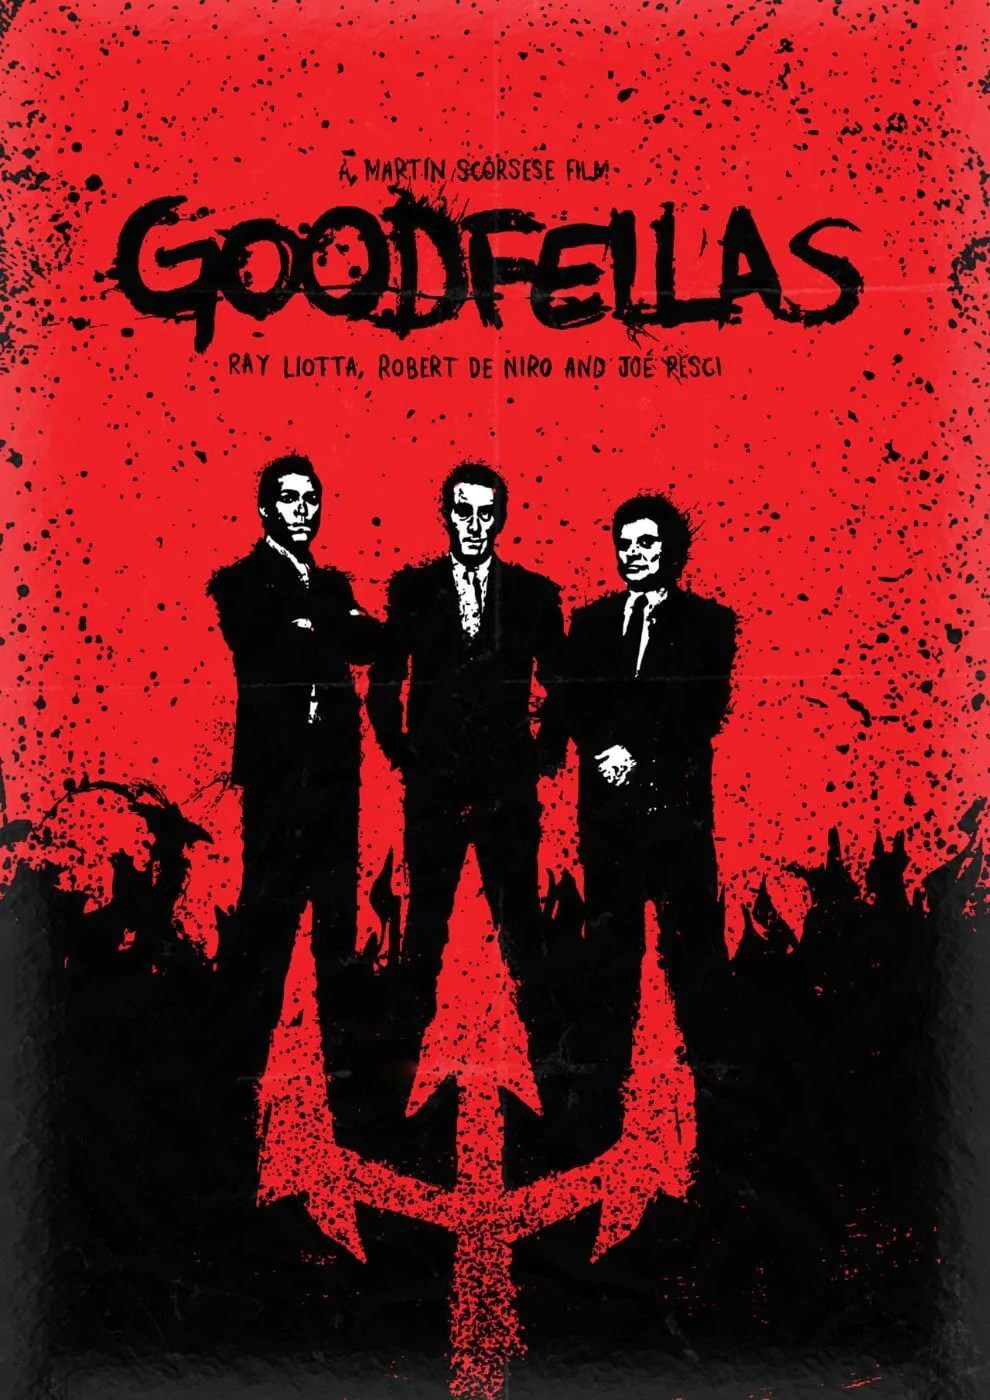 movie poster fan art goodfellas tallenge hollywood poster collection framed prints